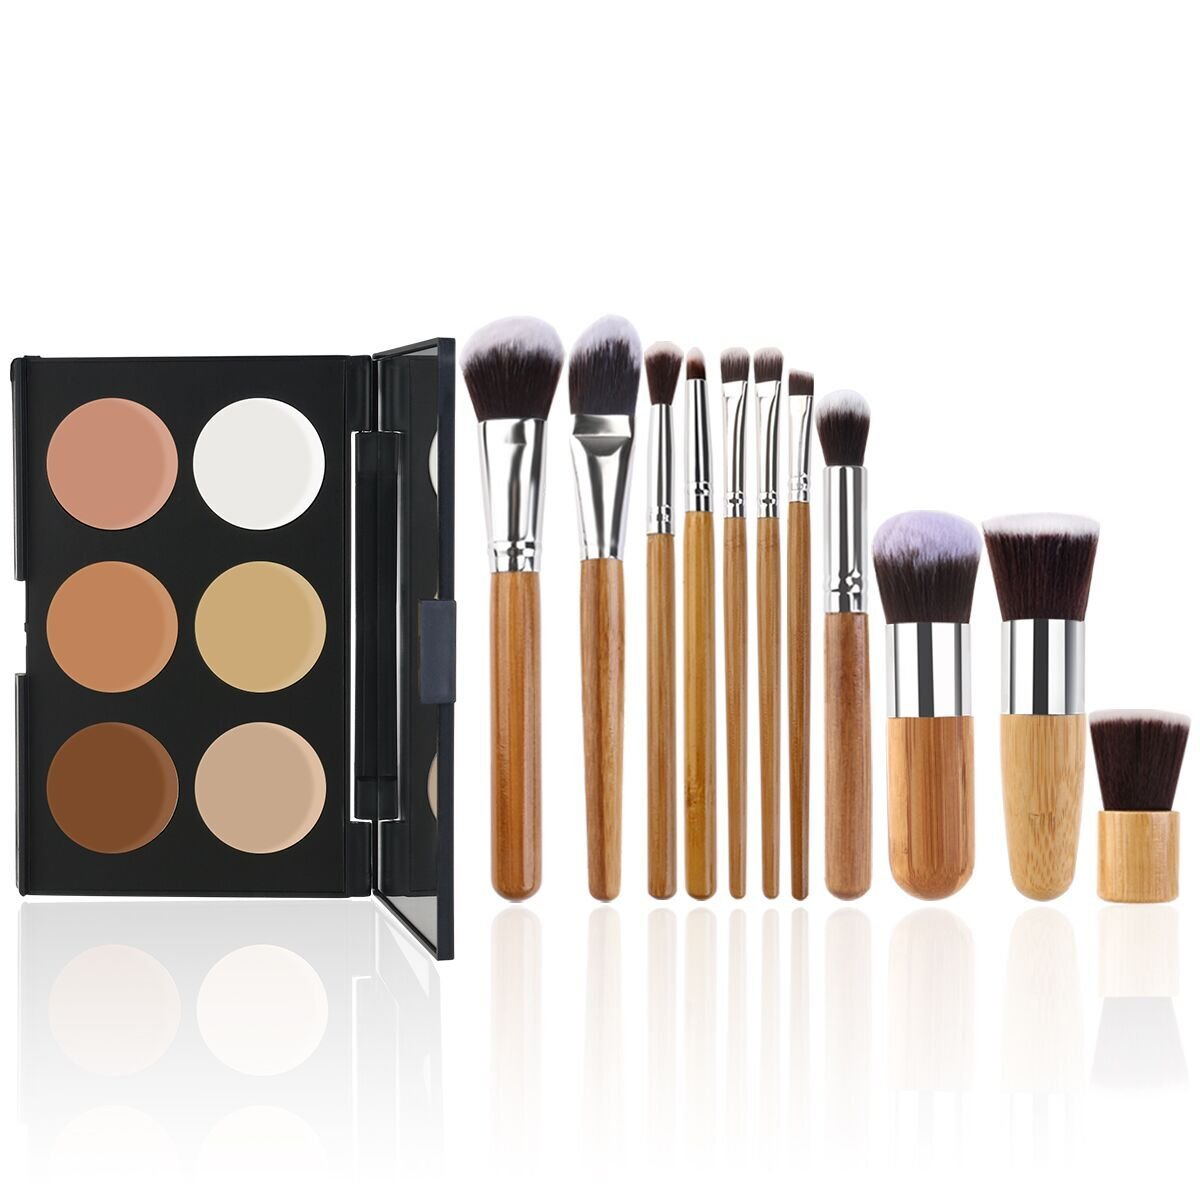 RUIMIO Contour Kit Cream Contour Palette 6 Colors with Makeup Brush Set